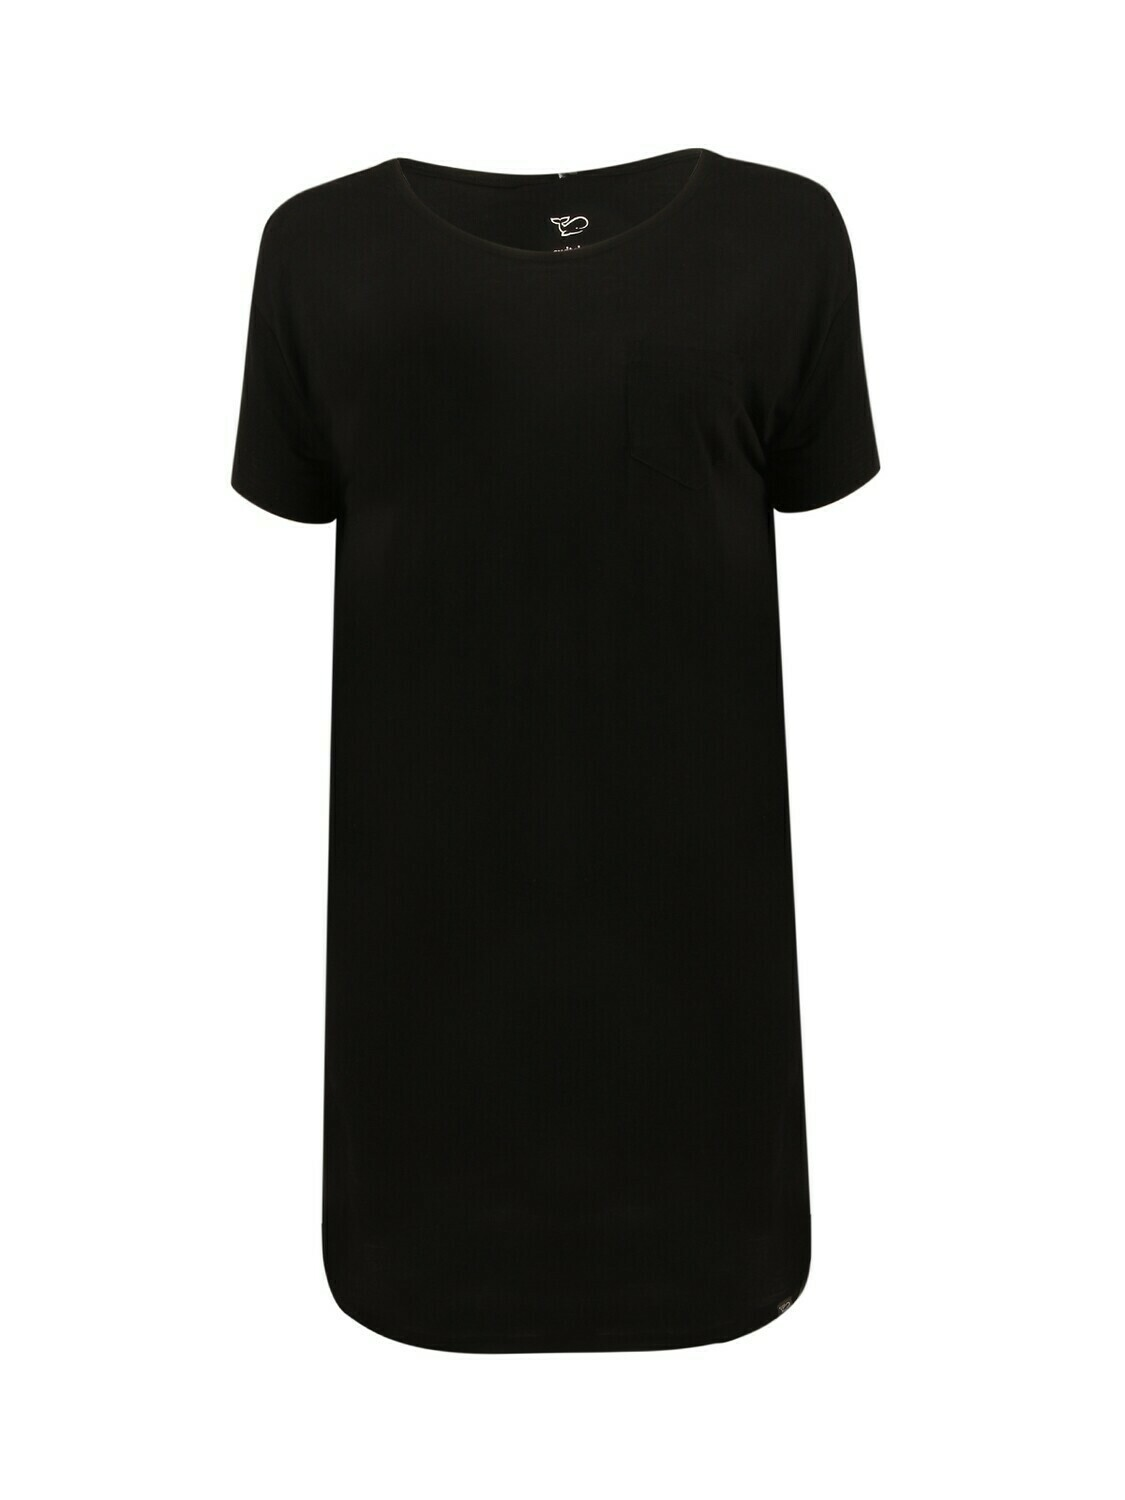 Switcher Damen T-Shirt Kleid